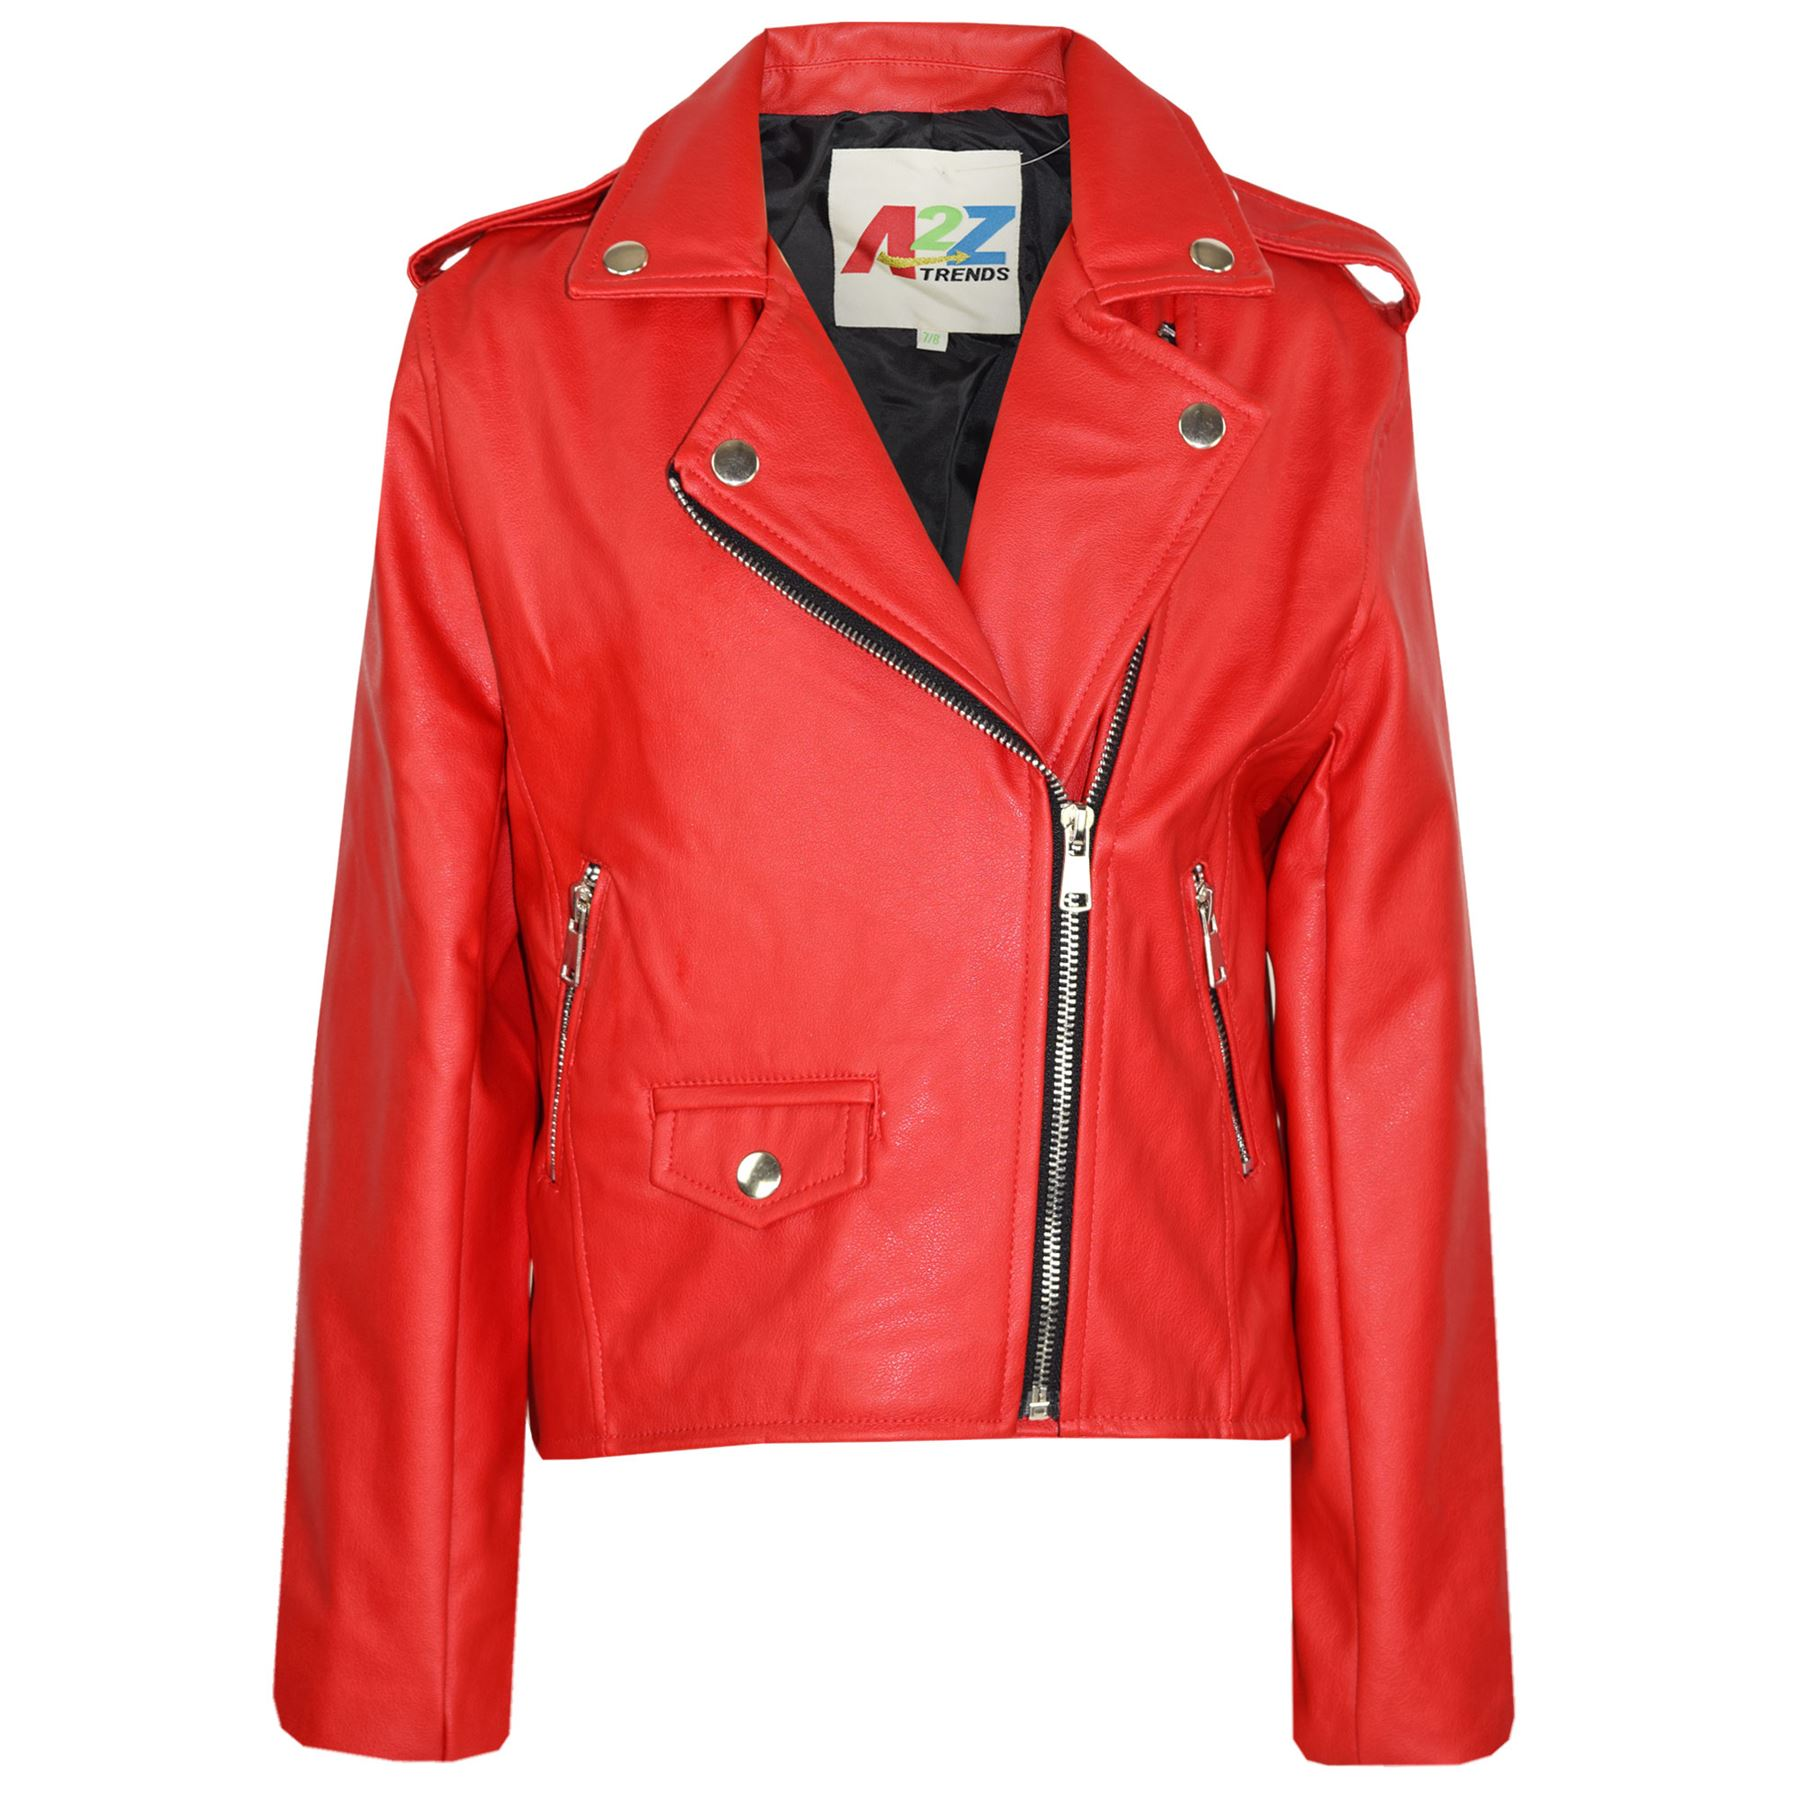 Kids Jackets Girls Designer's PU Leather Jacket Zip Up ...